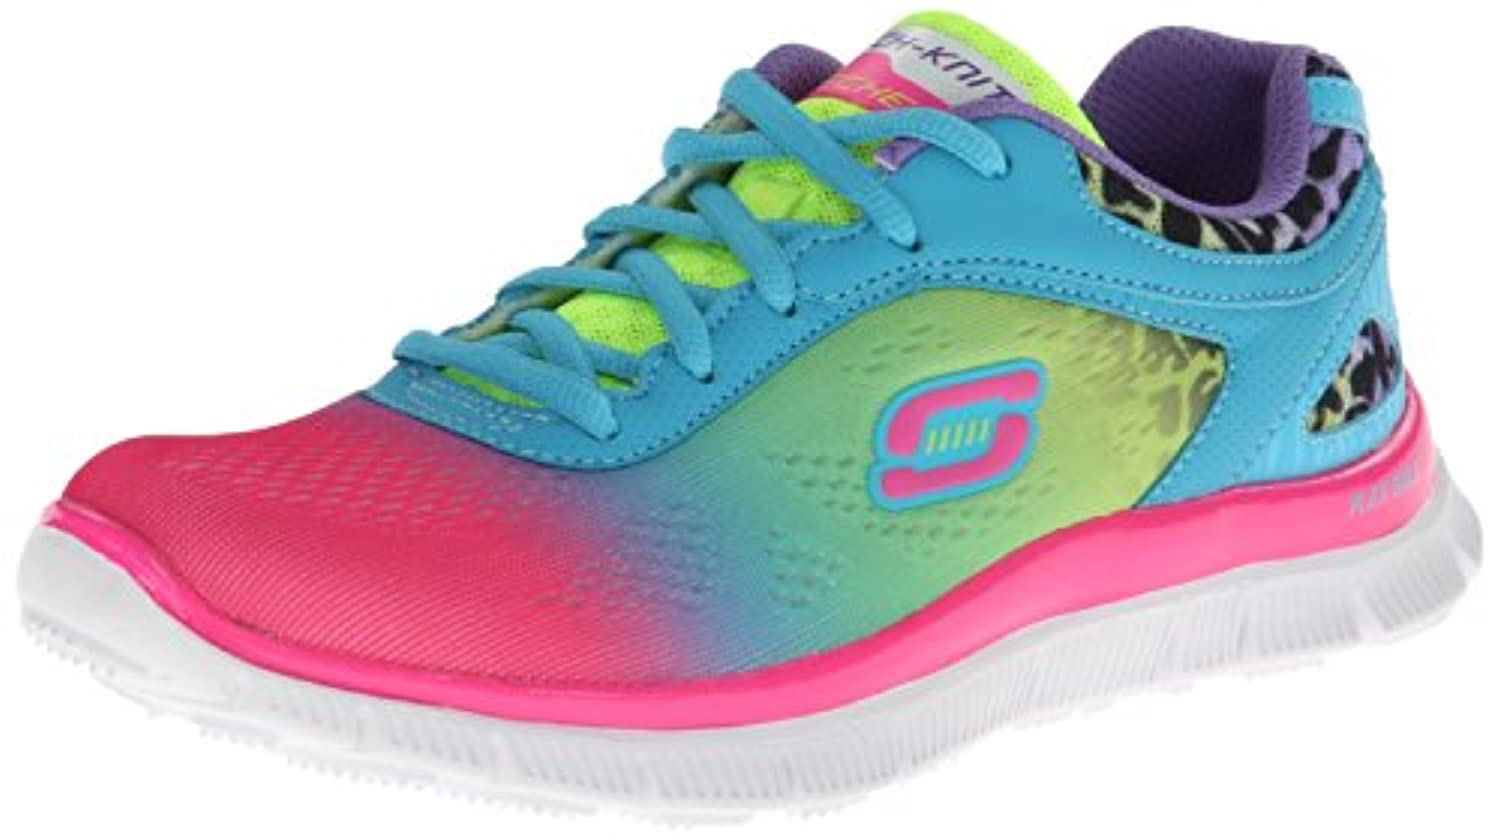 Skechers Flex Appeal Serengeti, Girls' Multisport Outdoor Shoes, Pink (Npmt - Neon Pink), 1.5 UK (34 EU)